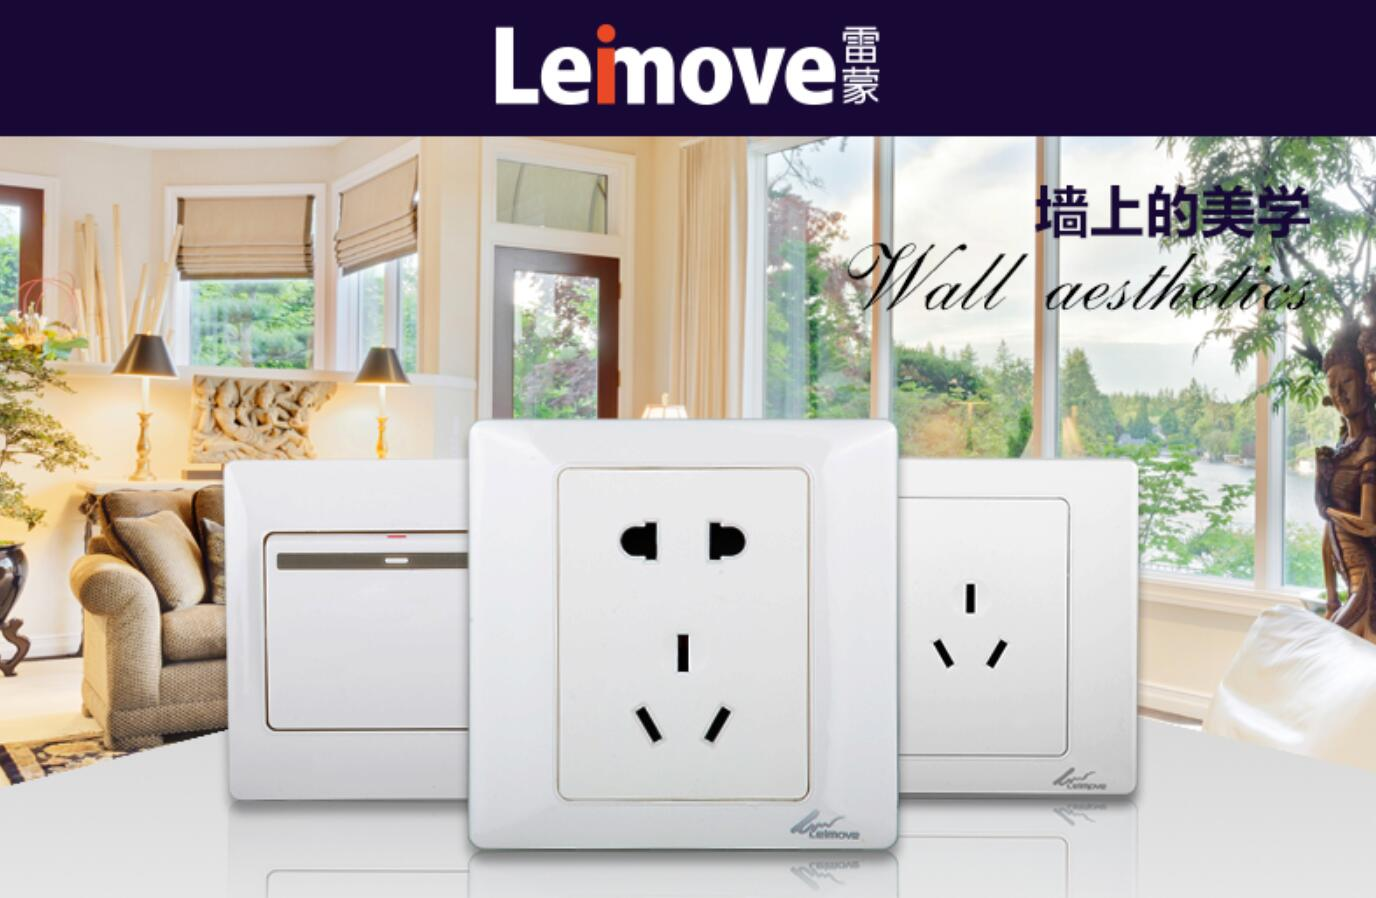 Leimove-Electrical Switch Box Best Electric Switch For Home From Leimove